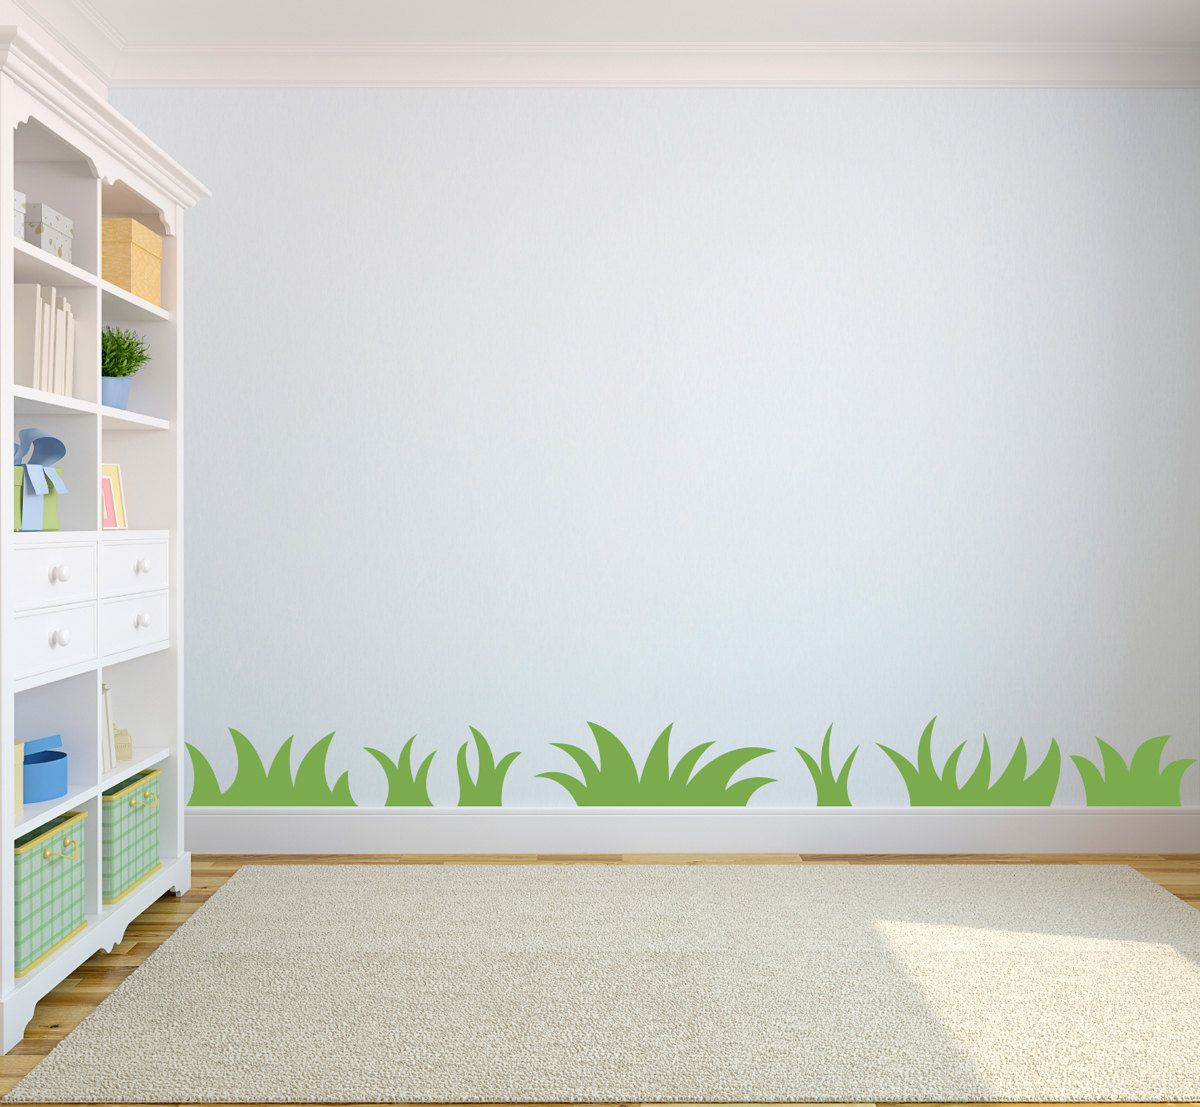 Bedroom Wall Decals Of Grass Wall Decal Nature Wall Art For Kids Bedroom Set